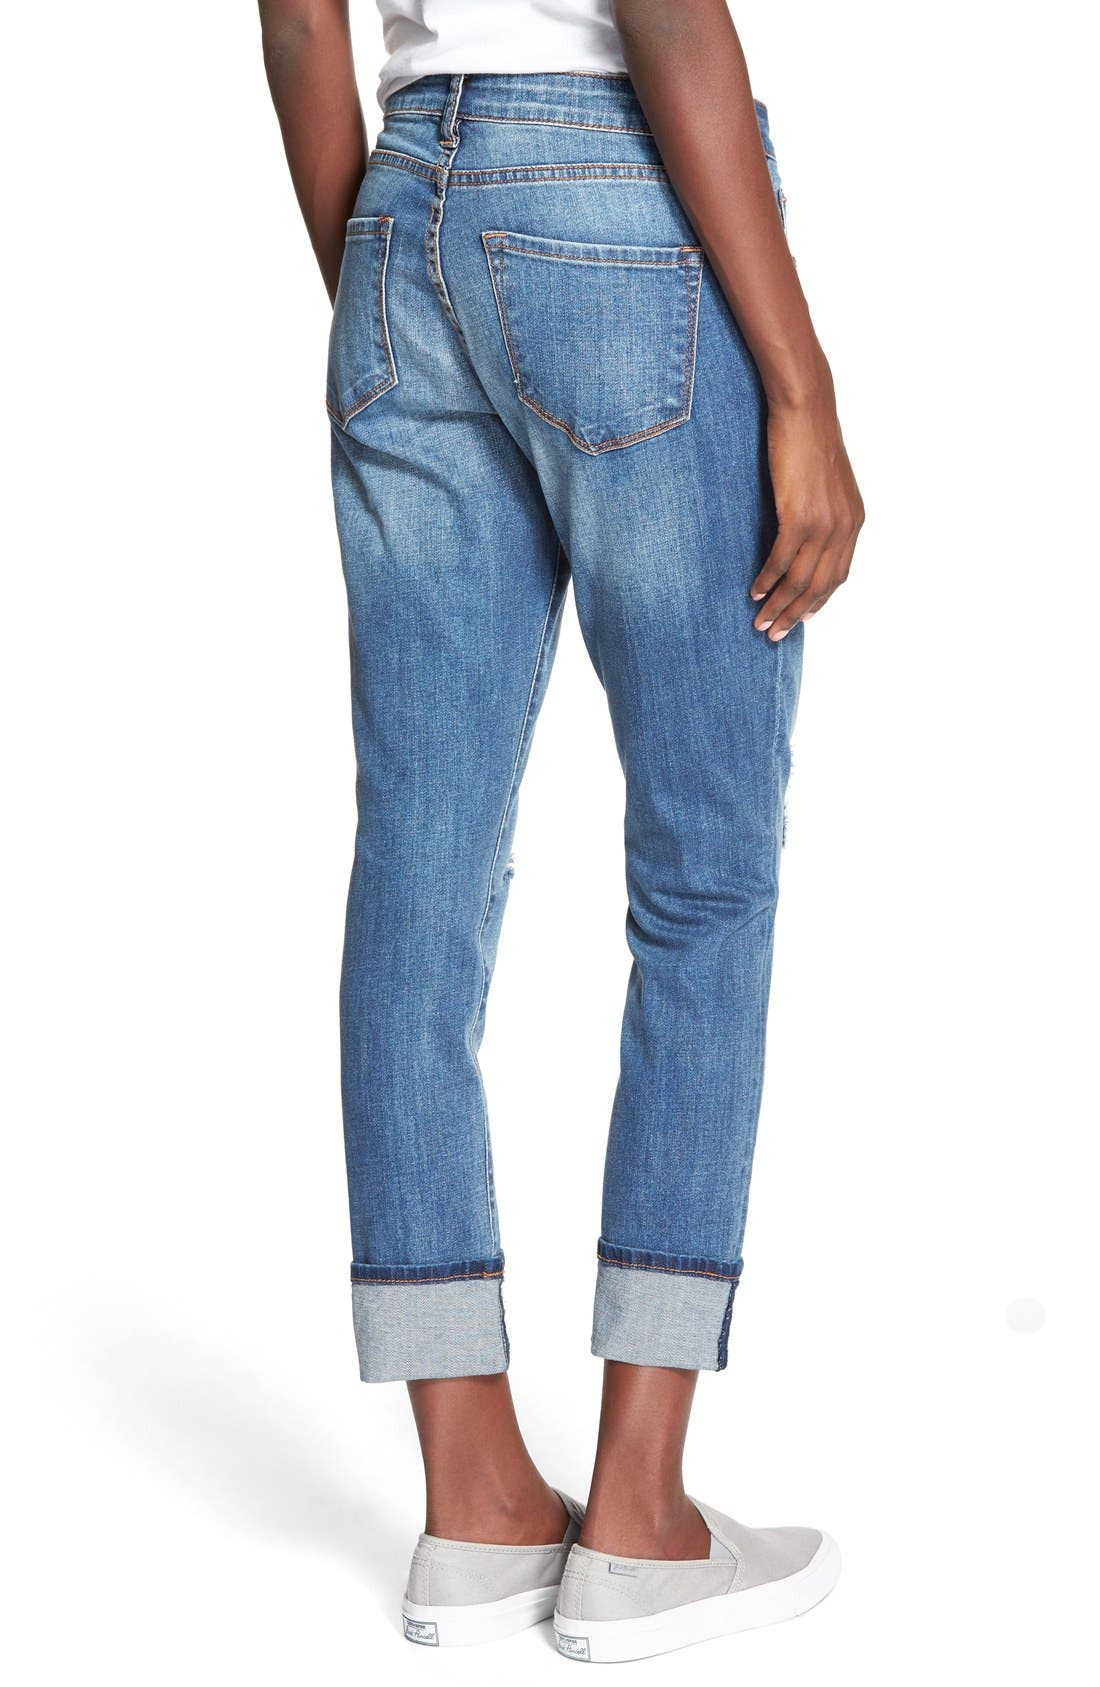 Alternate Image 3  - STS Blue 'Tomboy' High Rise Boyfriend Jeans (Pismo Beach)